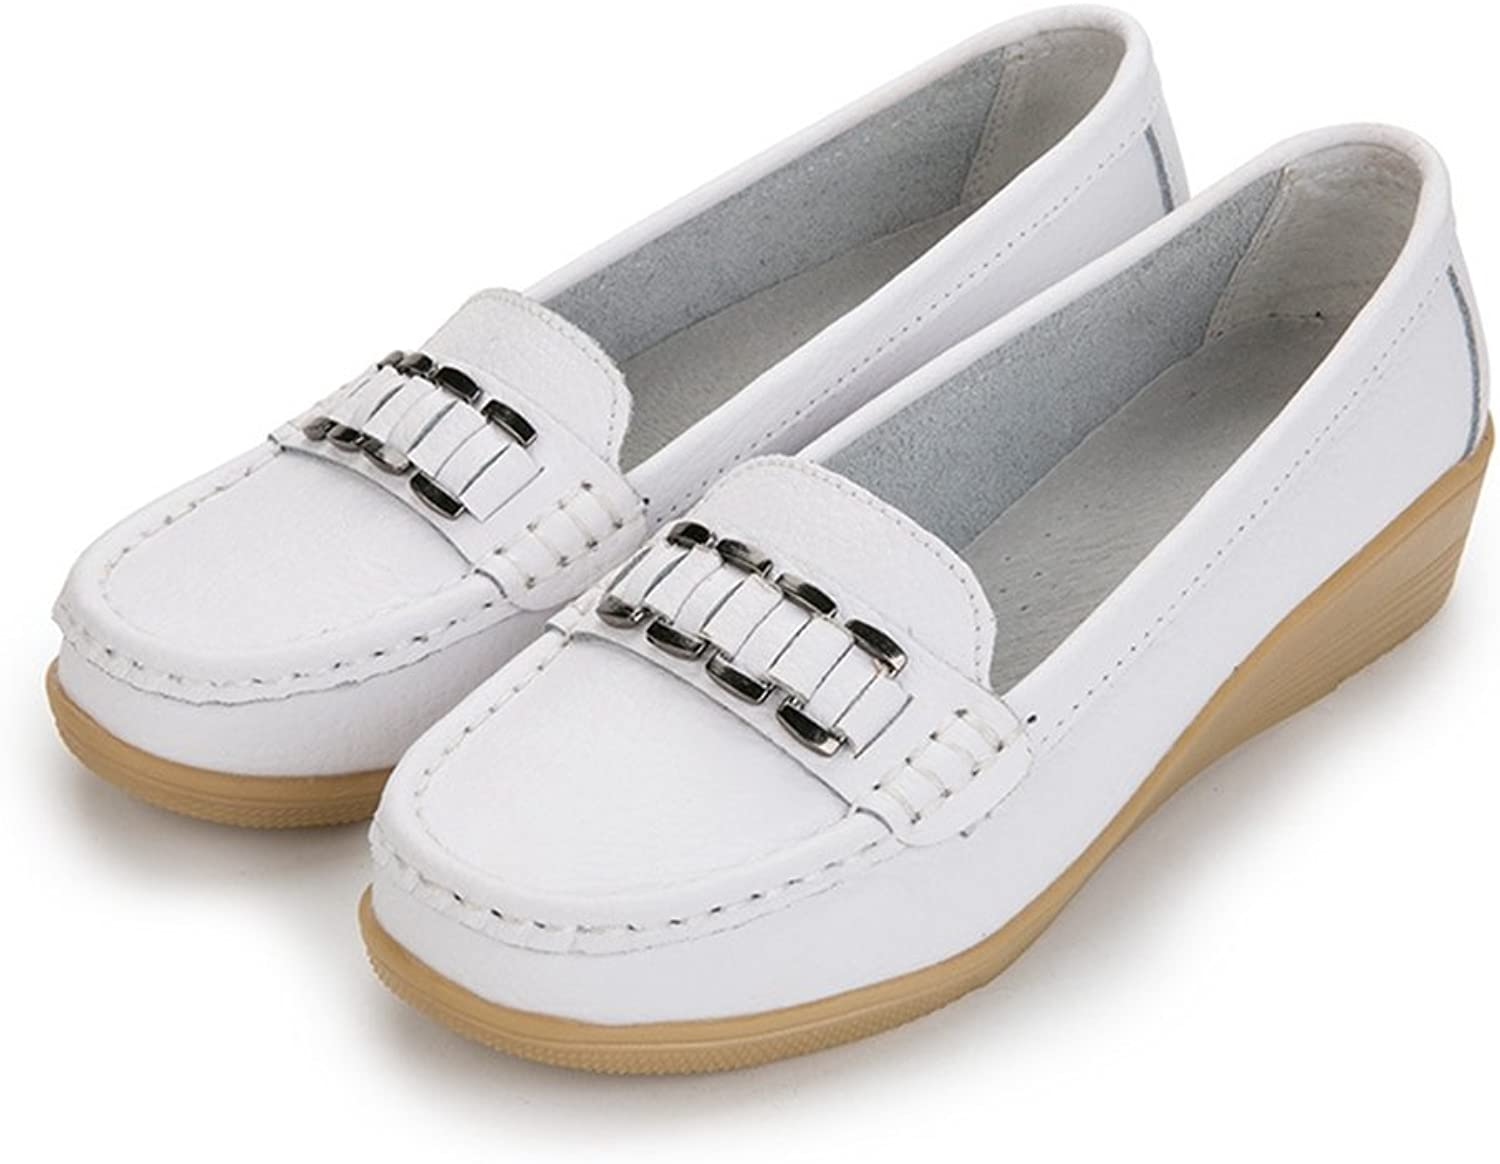 T-JULY Women's Loafers shoes Fashion Round Toe Casual Low Wedge Non-Slip Moccasin